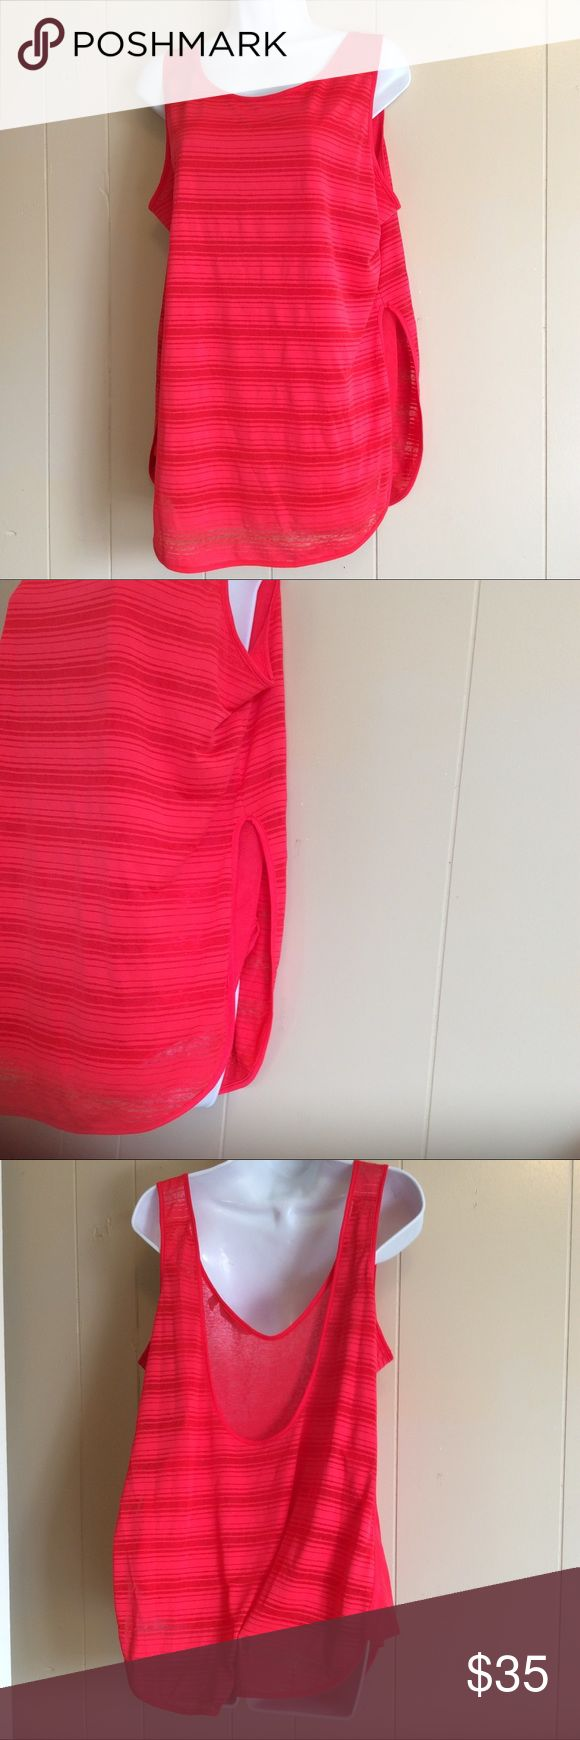 Size Large Athleta loose tank top striped coral Only tried on, like new coral monotone striped loose tank top. Very light fabric two layers. Tunic style bottom a little longer than a regular top. Size Large athleta Athleta Tops